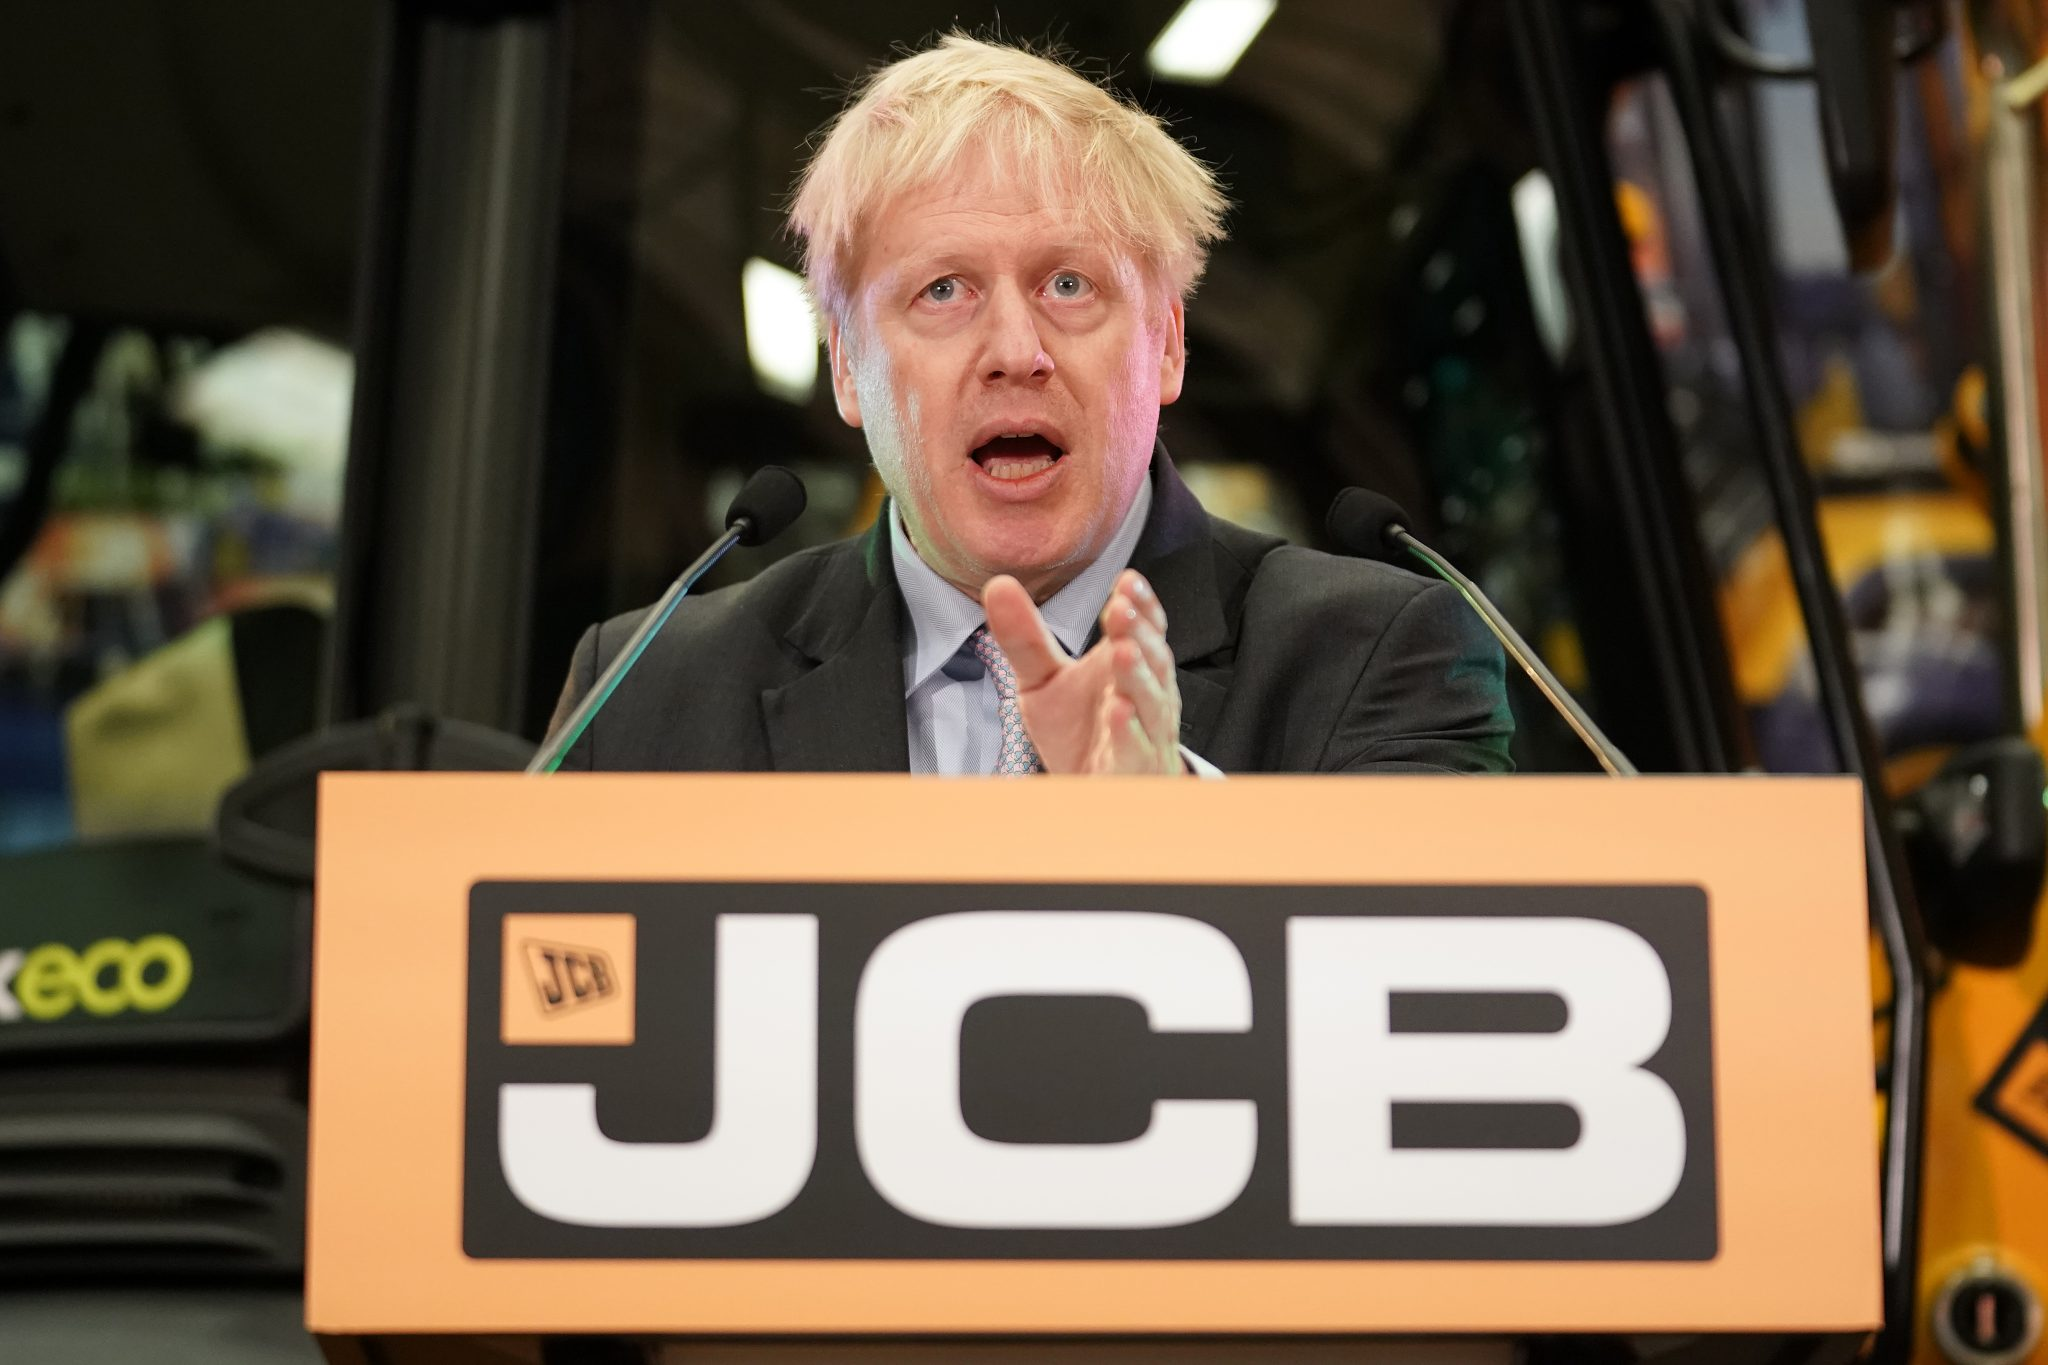 Boris Johnson delivers a speech at JCB World Headquarters on January 18, 2019 in Rocester, Staffordshire. After defeating a vote of no confidence in her government, Theresa May has called on MPs to break the Brexit deadlock by conducting cross-party Brexit talks. The speech by the former Foreign Secretary is being widely acknowledged as a Tory leadership bid. (Photo by Christopher Furlong/Getty Images)